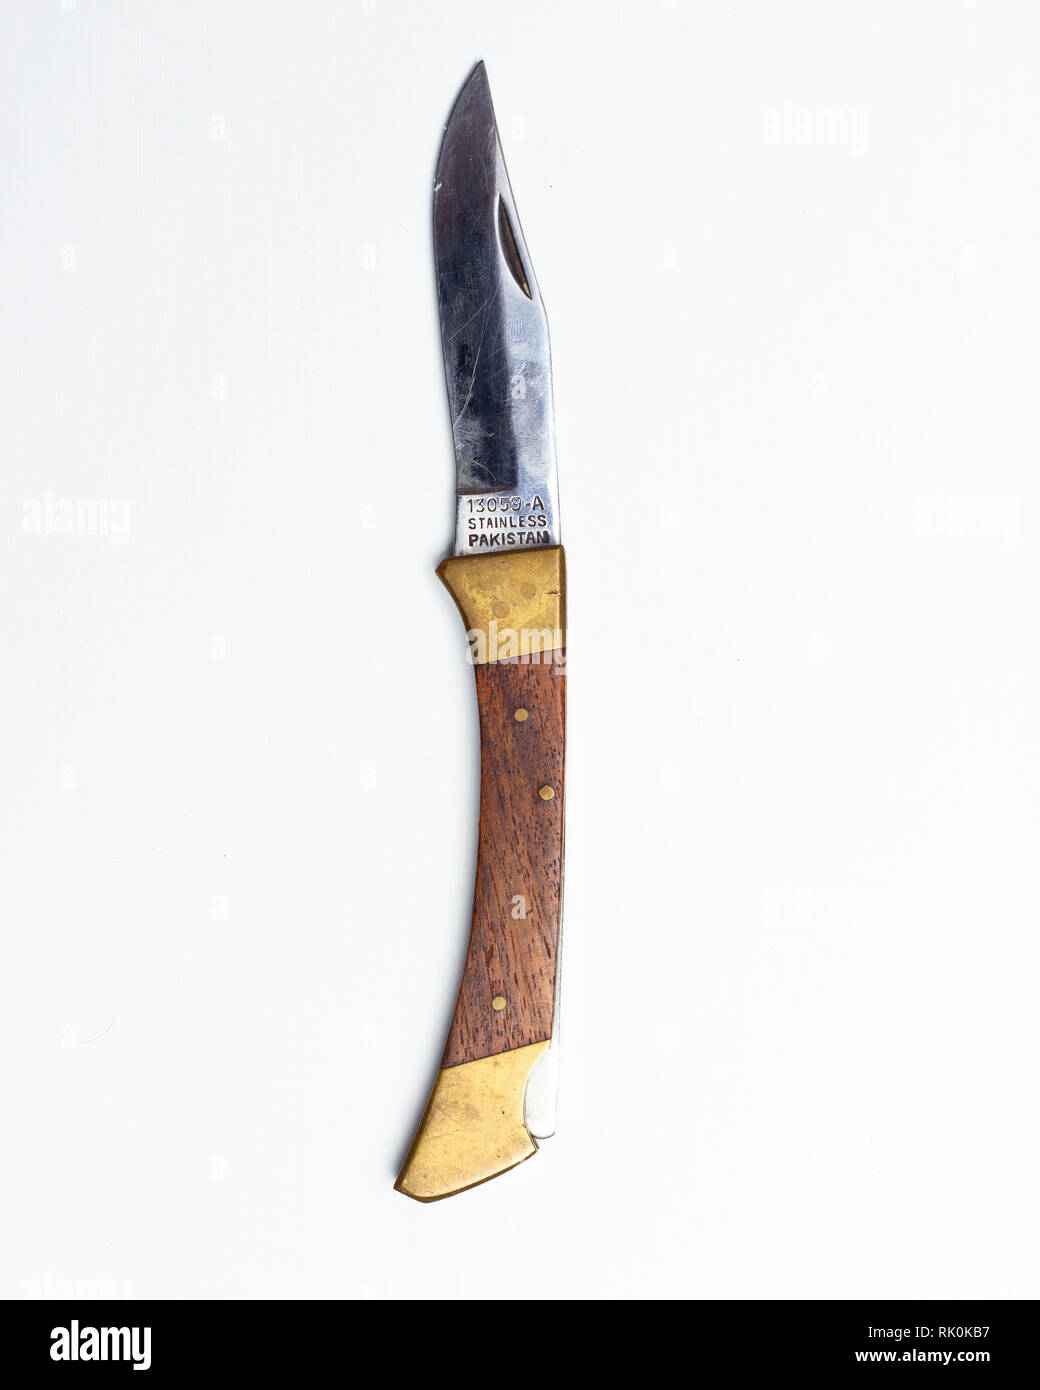 Vintage pocket knife open on white background - Stock Image